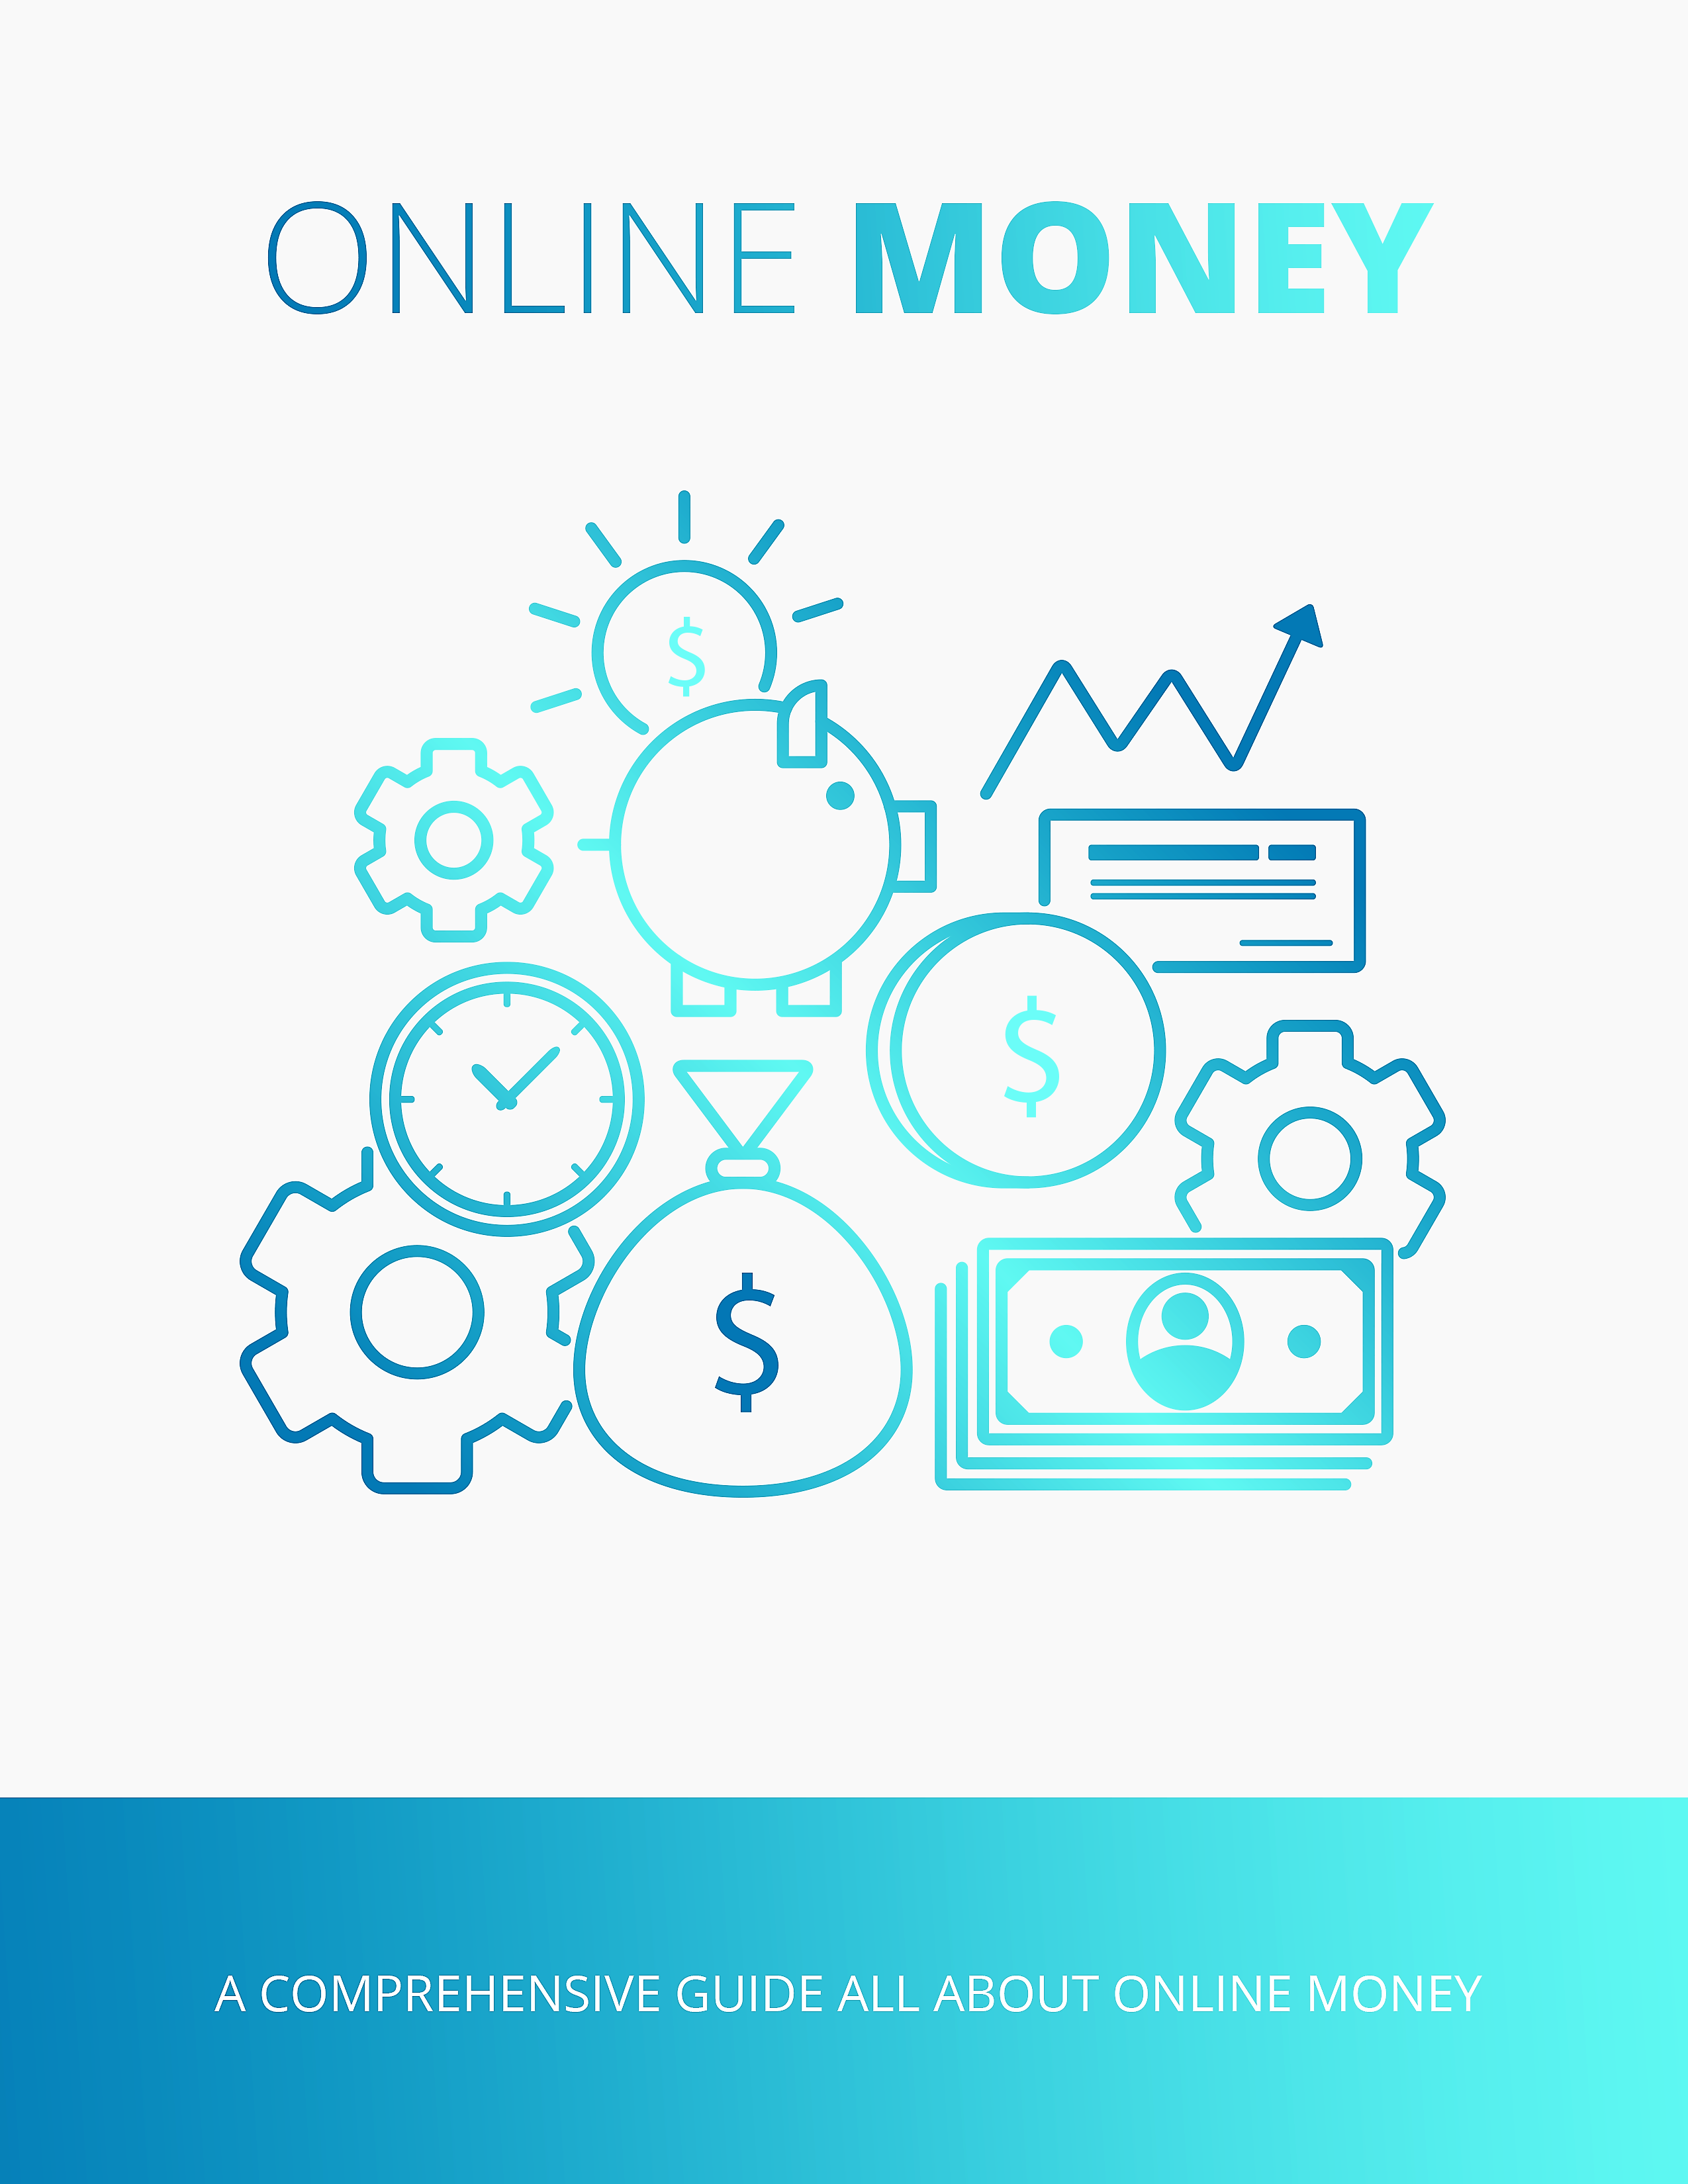 Learn How to Make Online Money